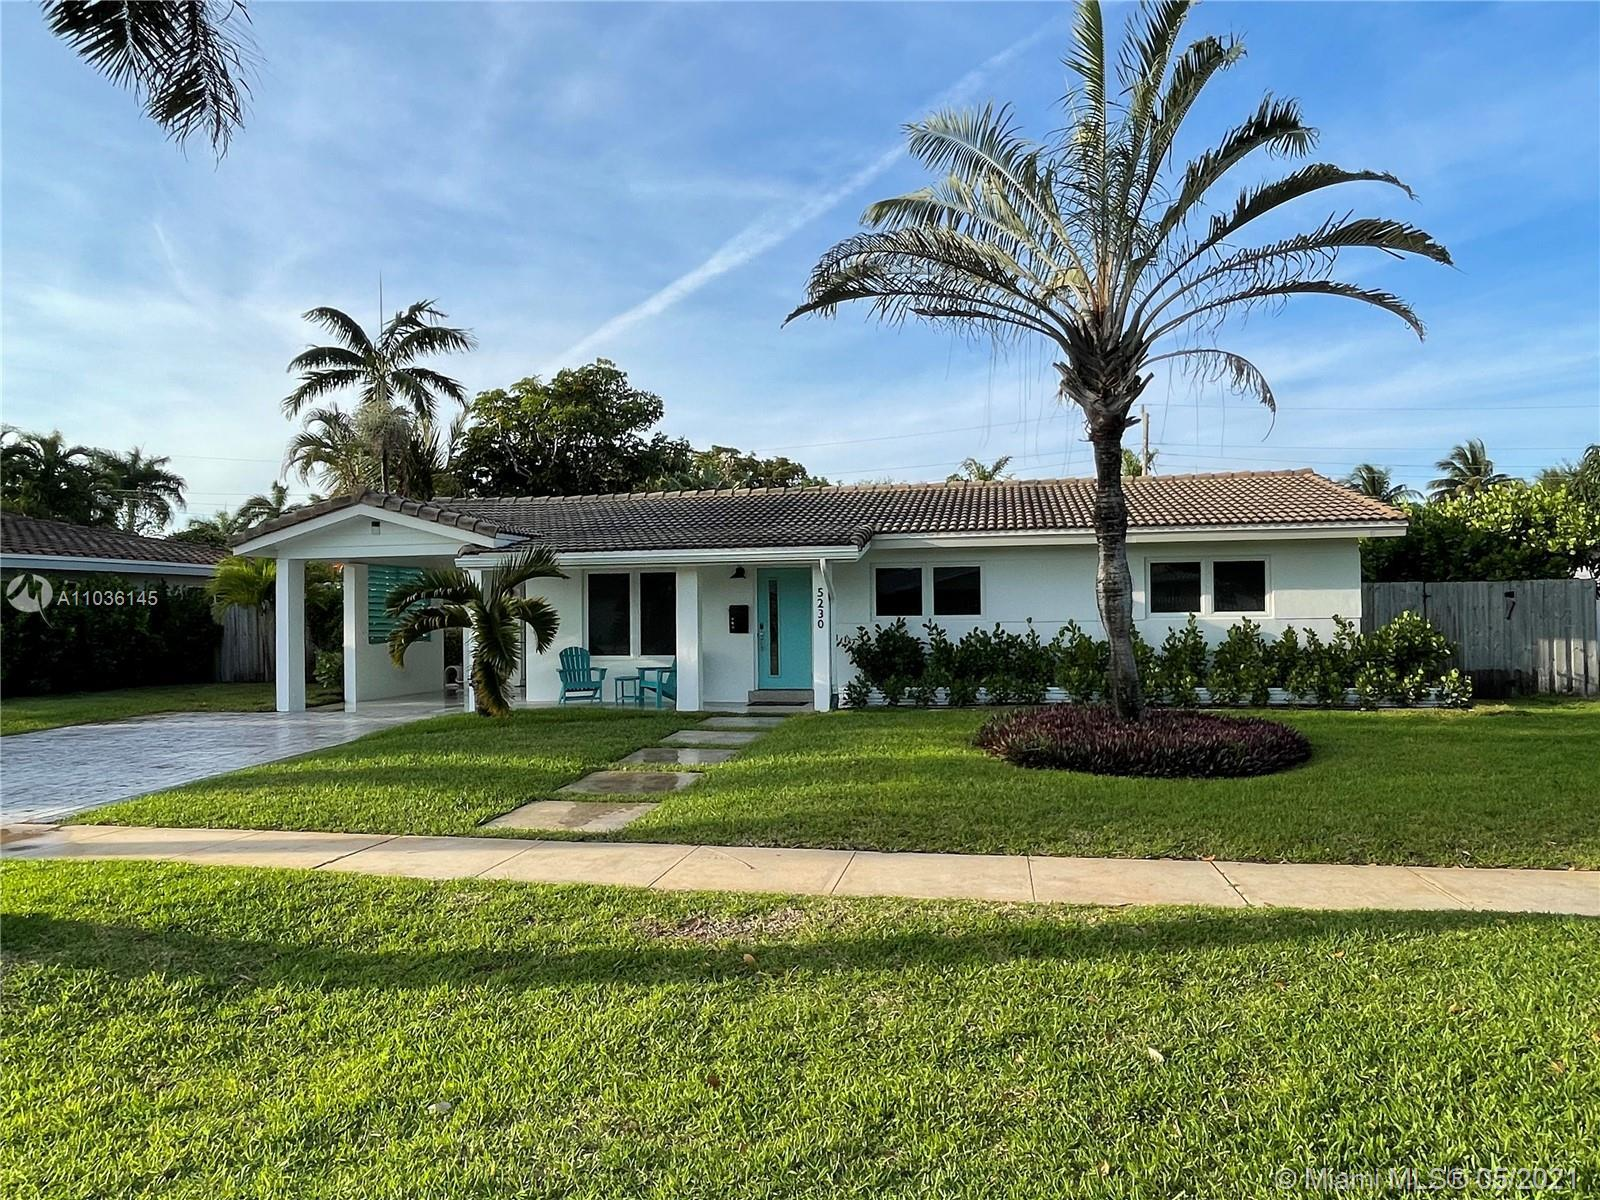 Don't miss the nicest home, with fantastic curb appeal, in popular Mary Knoll.  This home sits on an